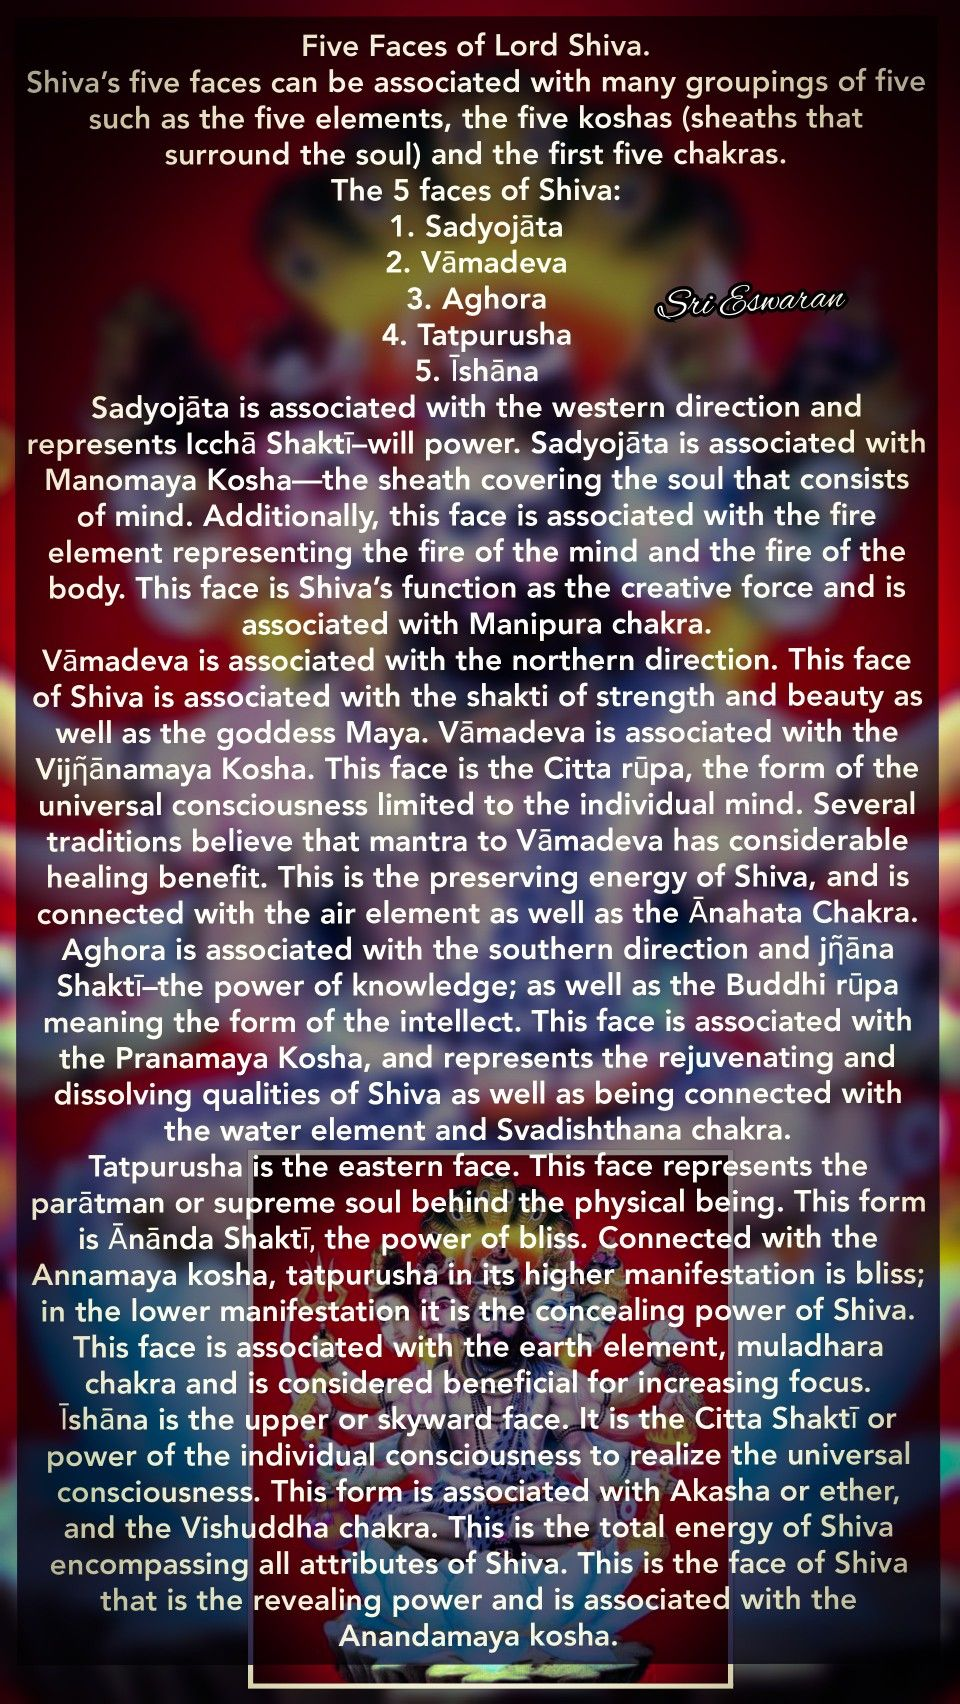 Shivas Five Faces Can Be Associated With Many Groupings Of